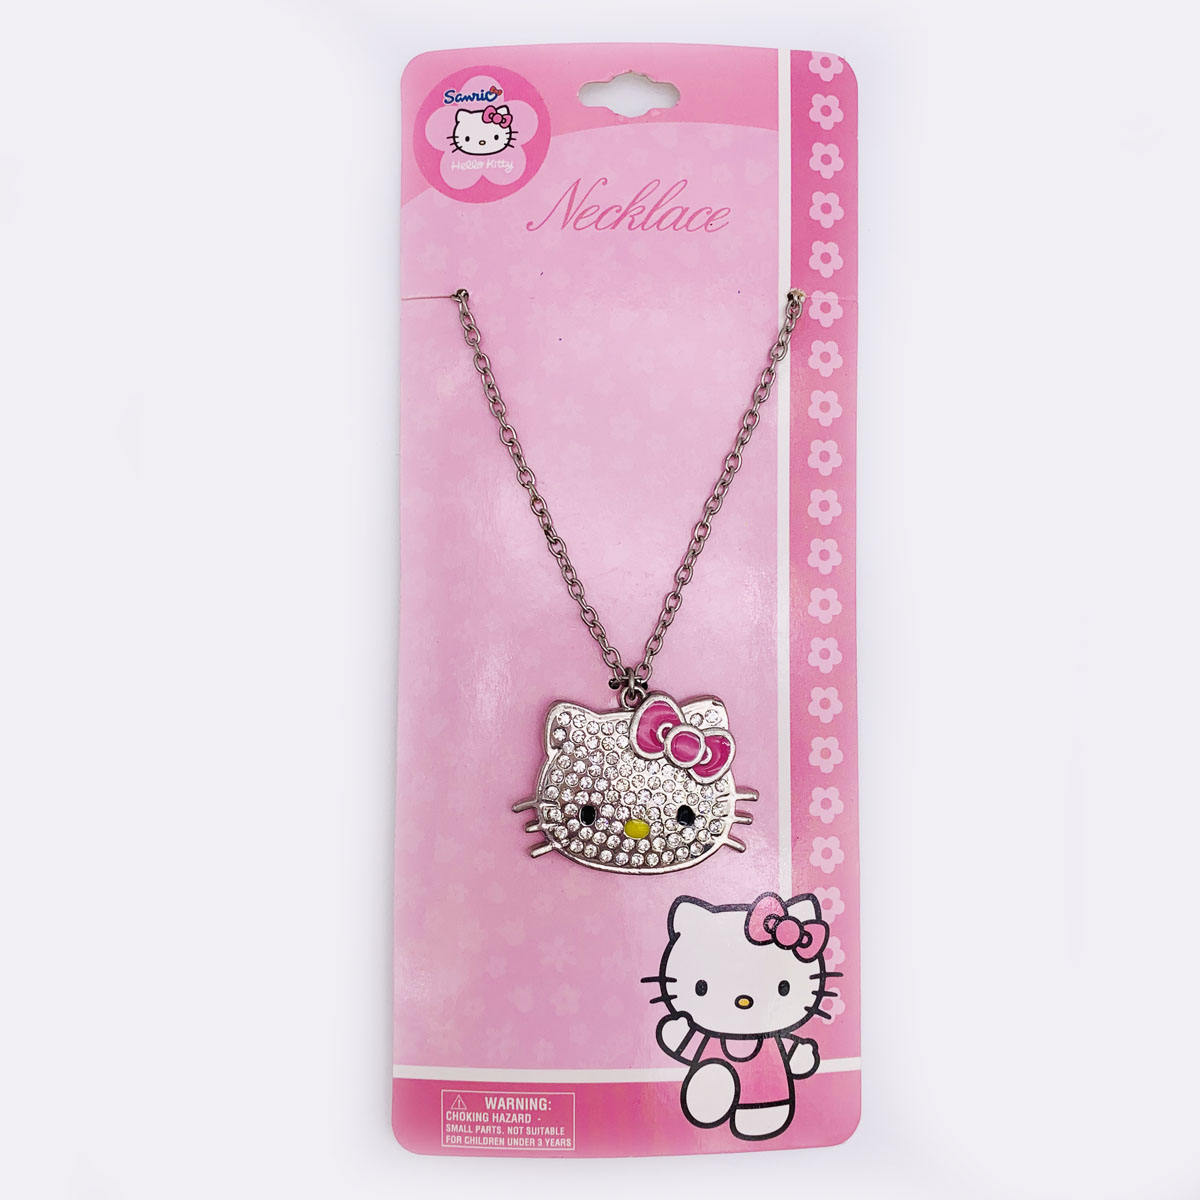 Collier hello kitty unisexe, en argent sterling, cristal, 80mm, avon Sedex BSCI aile, bijoux d'usine